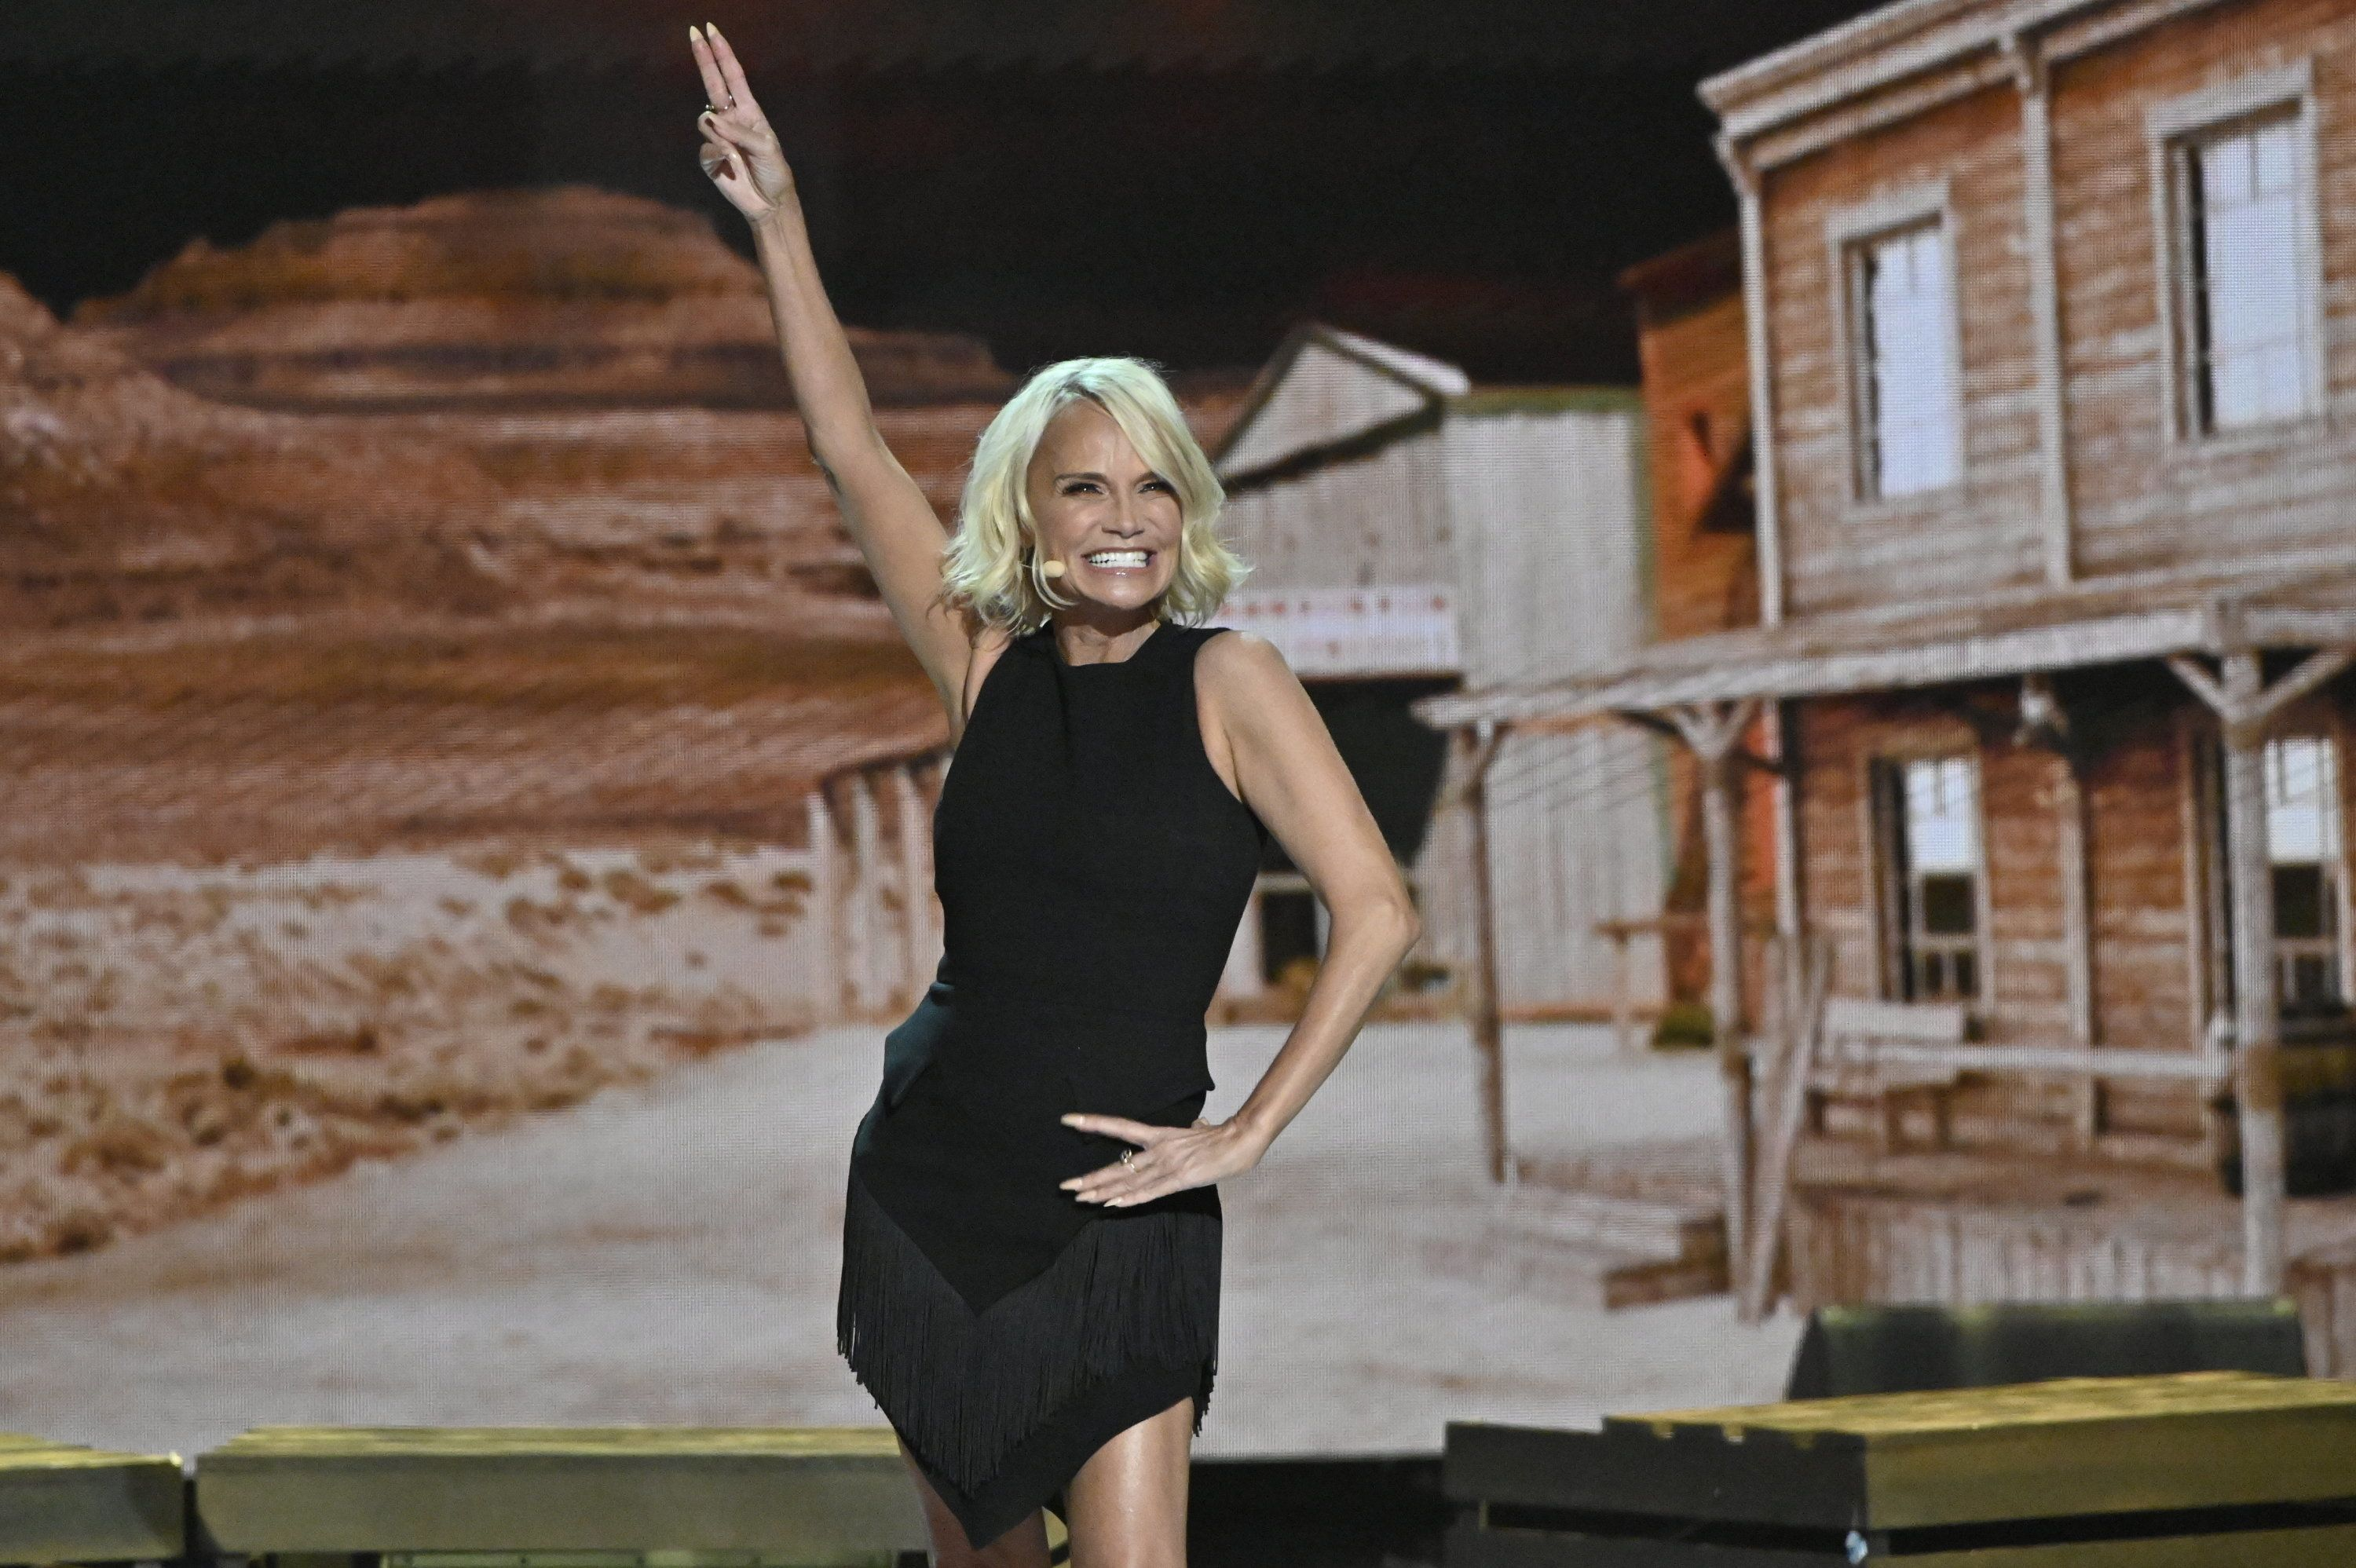 Even Tony and Emmy-winning Kristin Chenoweth gets migraines and has to go to work anyway.